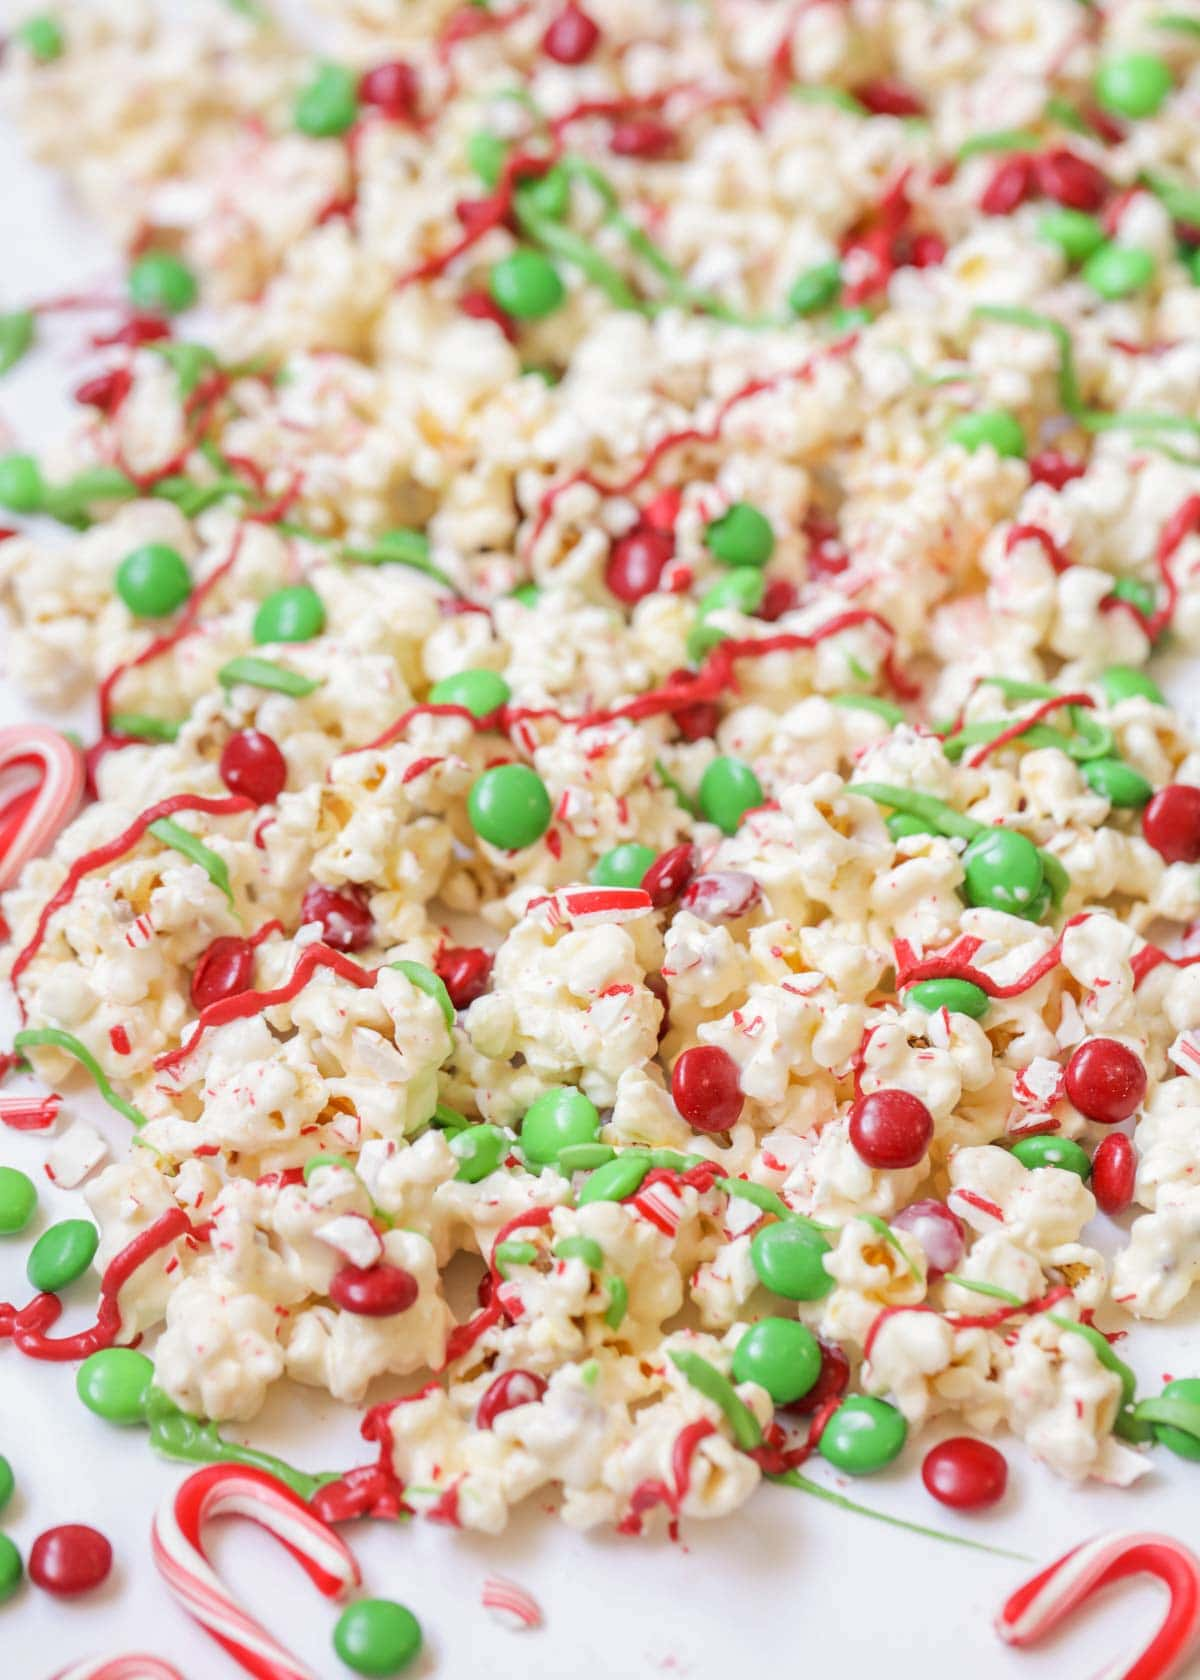 A spread of candy coated Christmas popcorn